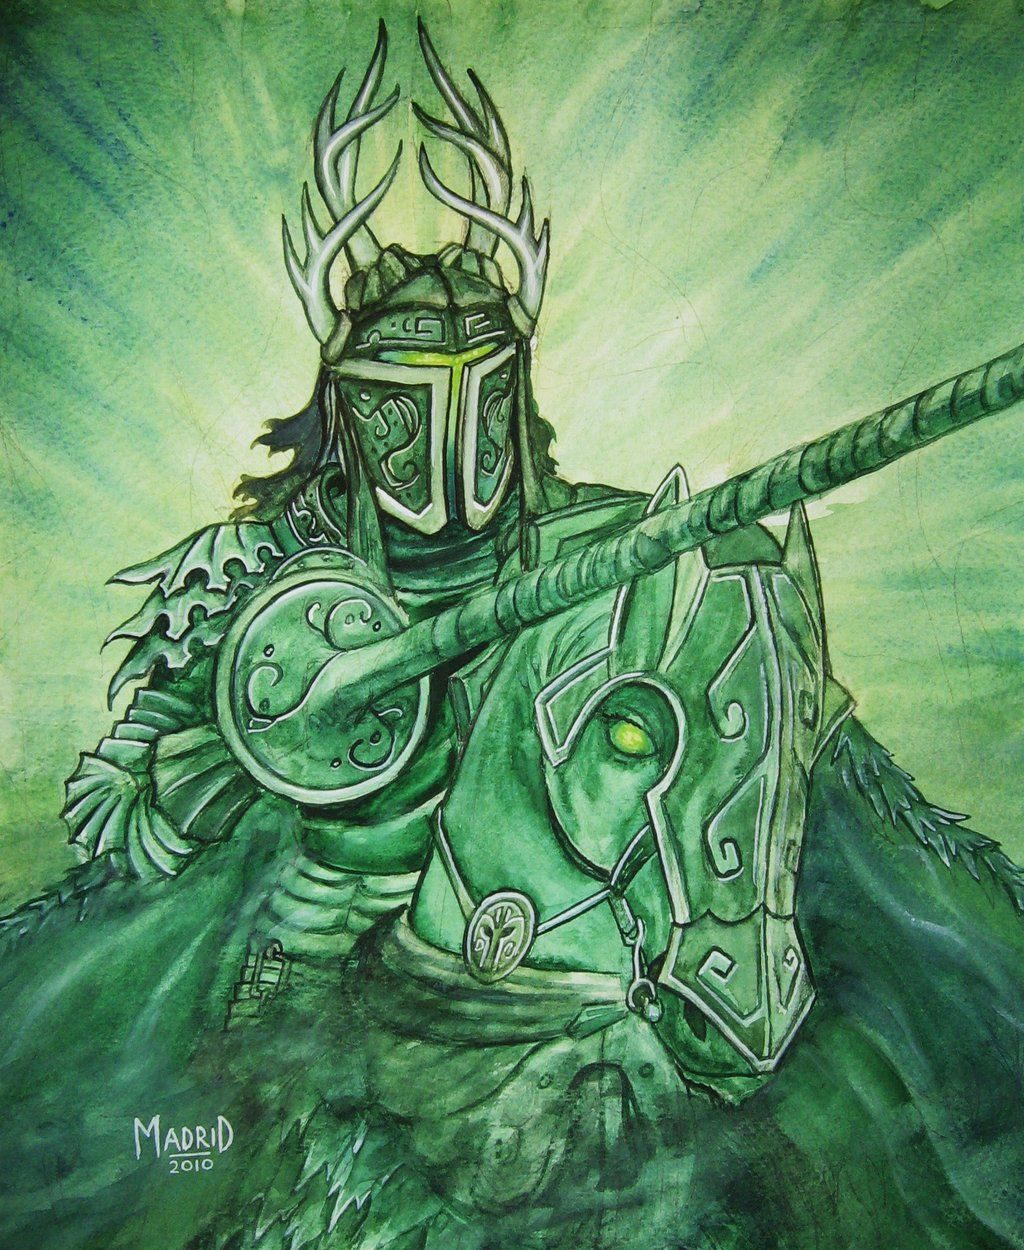 analysis of sir gawain and the green knight Passage analysis of sir gawain and the green knight in this passage, we find ourselves in king arthur's court during a christmas feast a green knight has just.